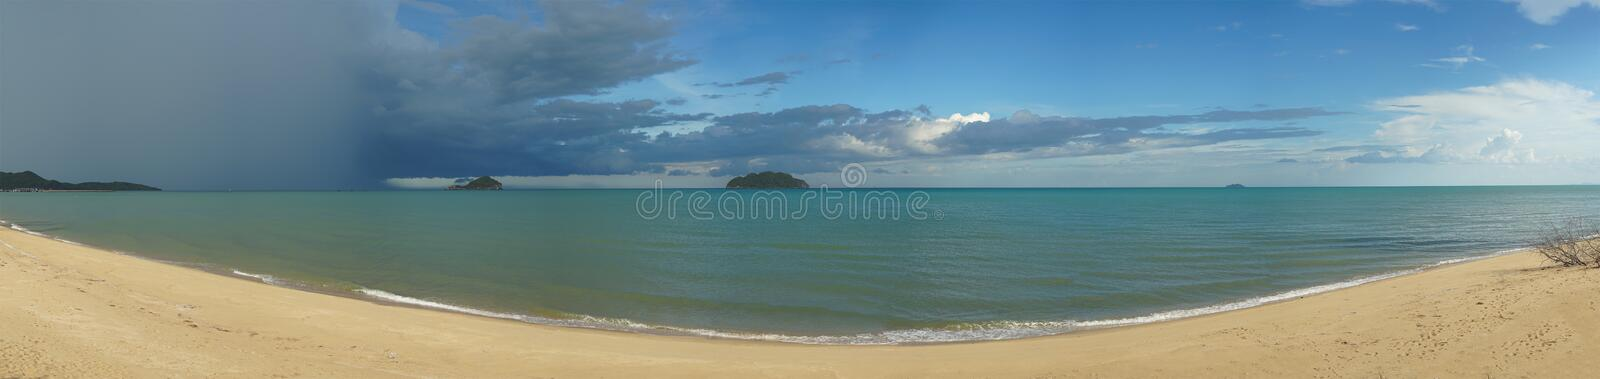 Beautiful panoramic sea view and clean beach wth three island and rainy cloud coming from left side of picture, colouful blue stock photography